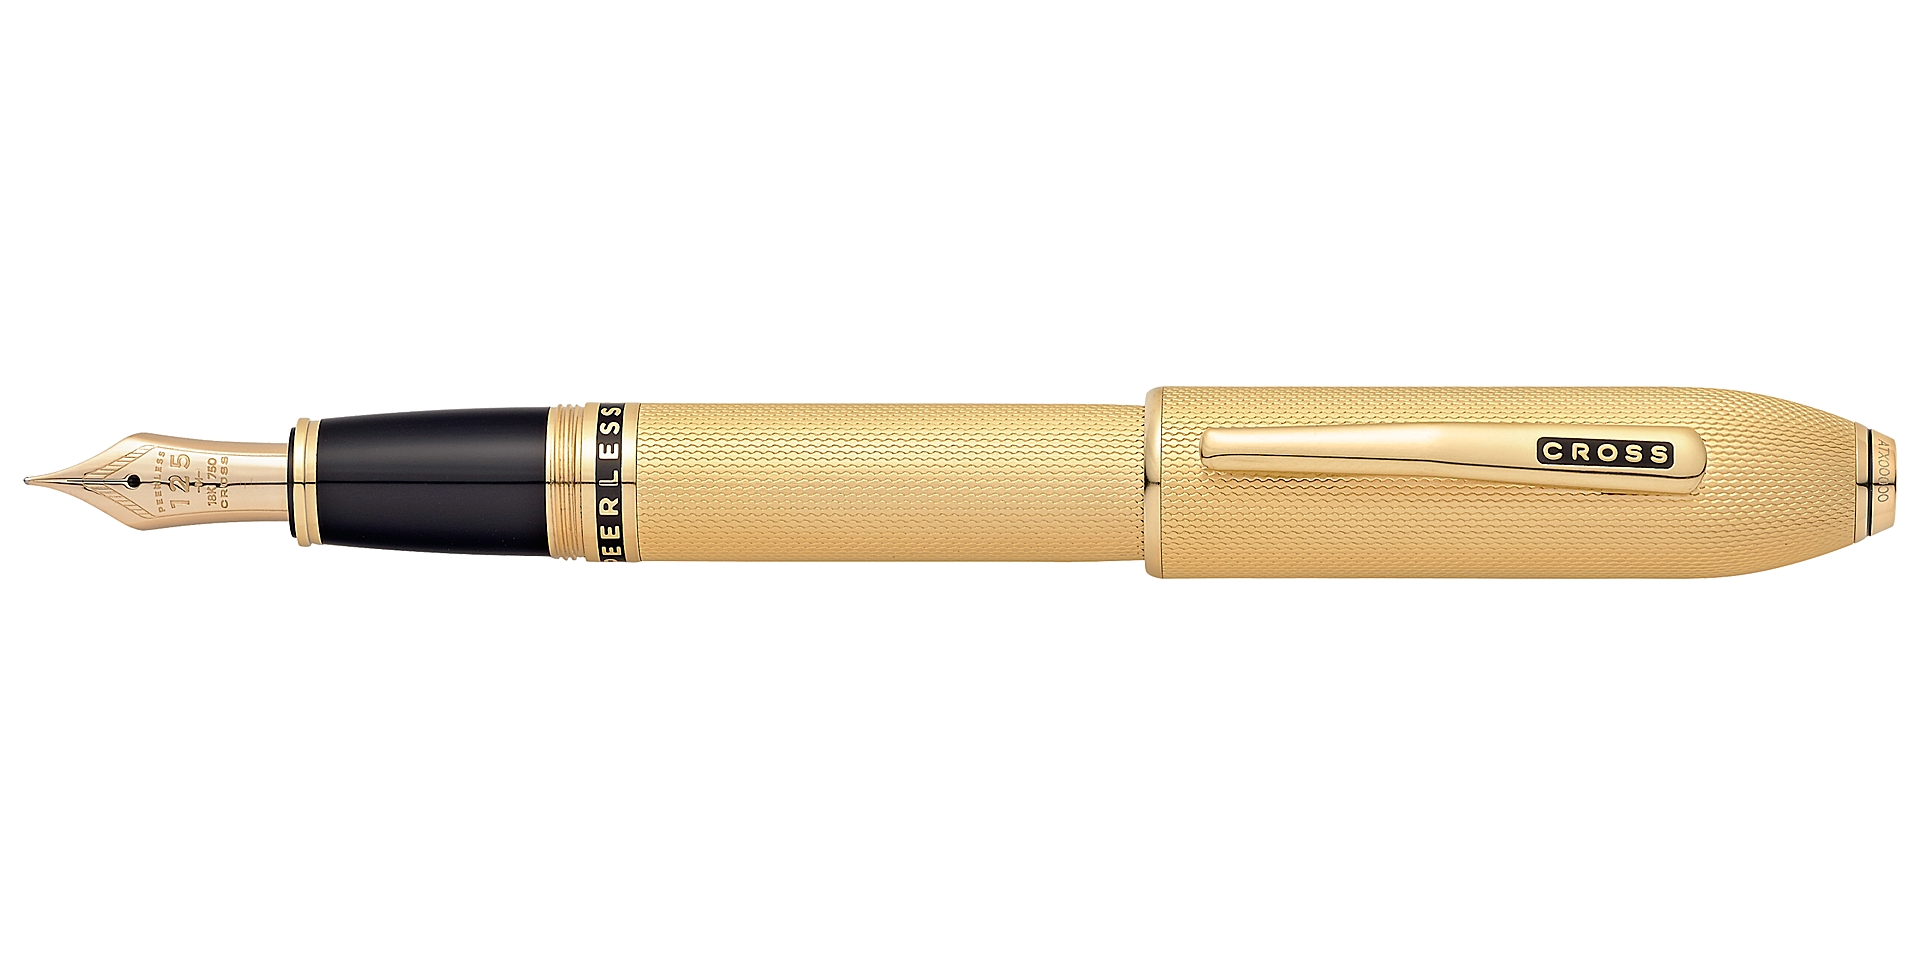 Cross Peerless 125 23 K Heavy Gold Plate Fountain Pen Picture